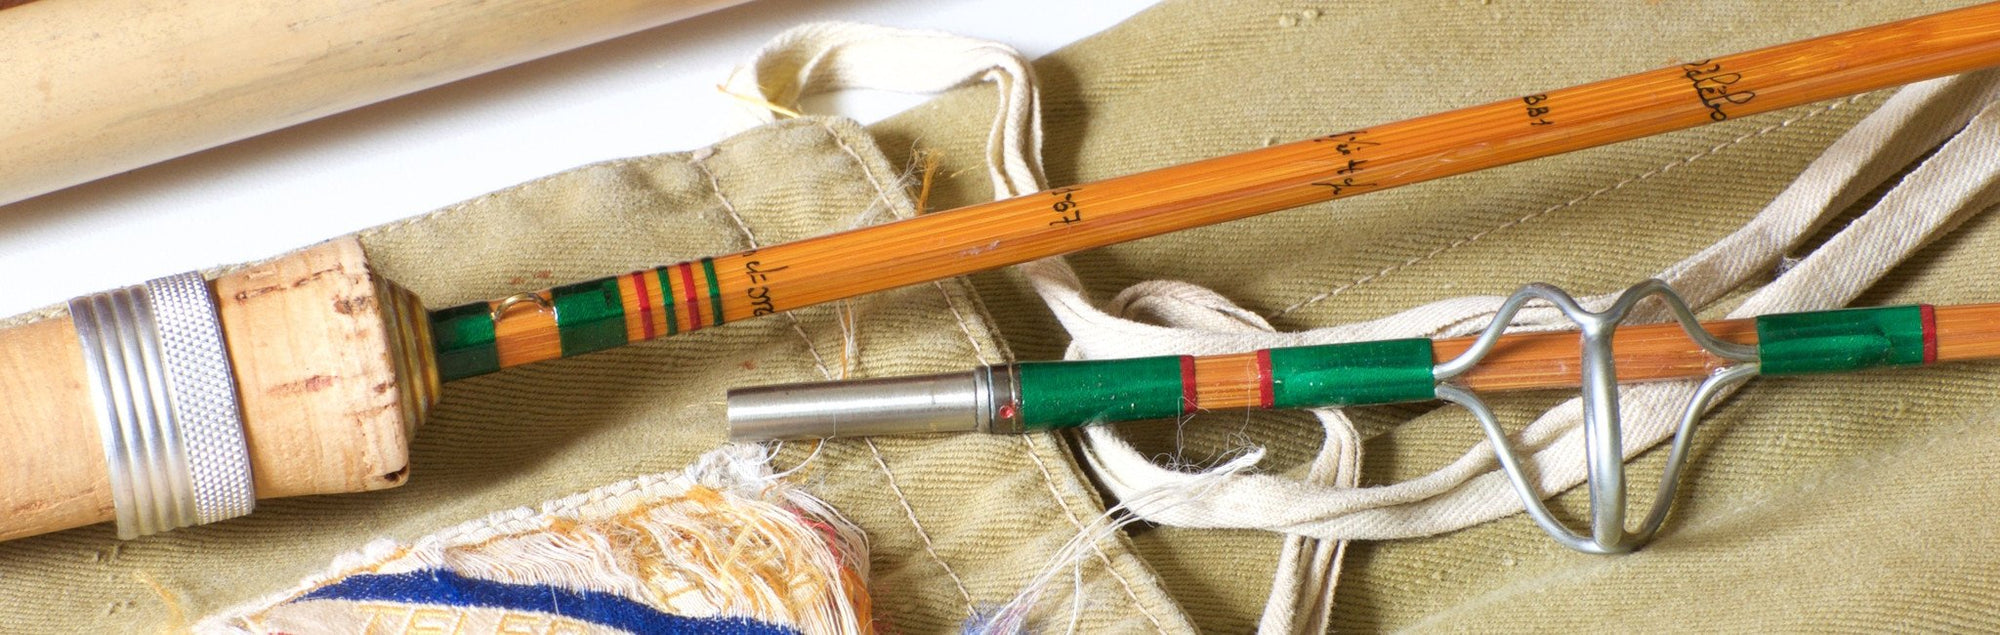 "Pezon et Michel ""Telebolic BB1"" Bamboo Spinning Rod"